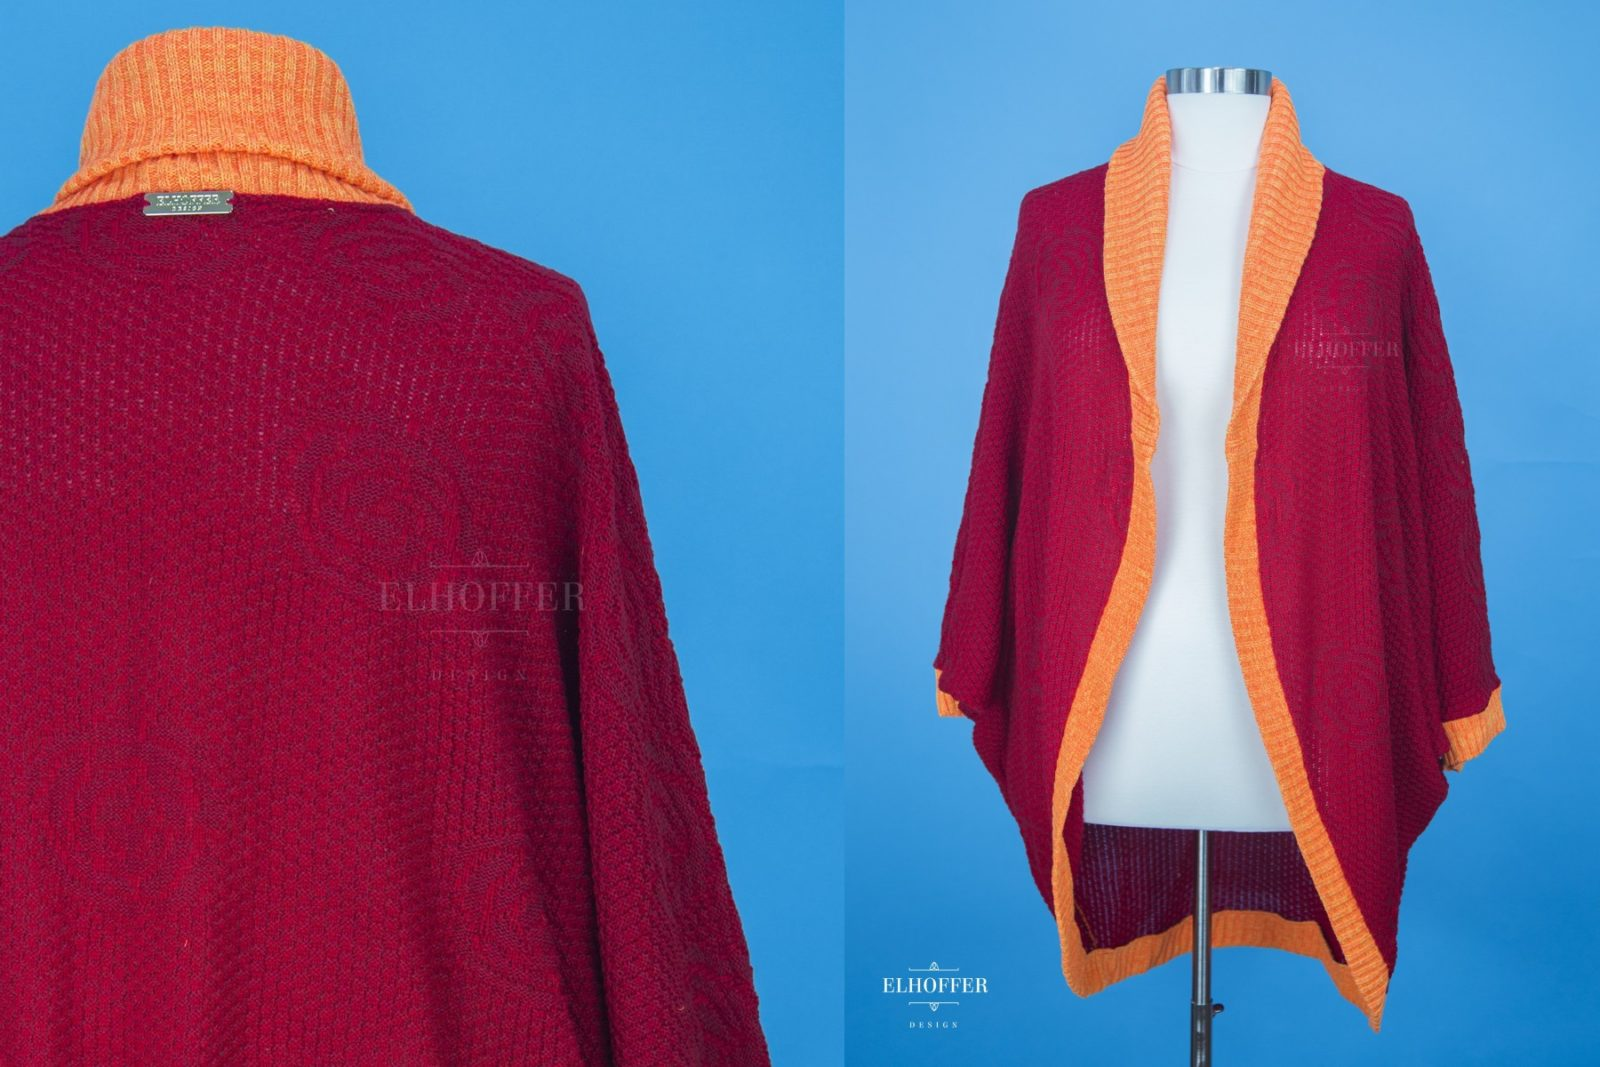 Queen Amidala Cardigan by Elhoffer Design